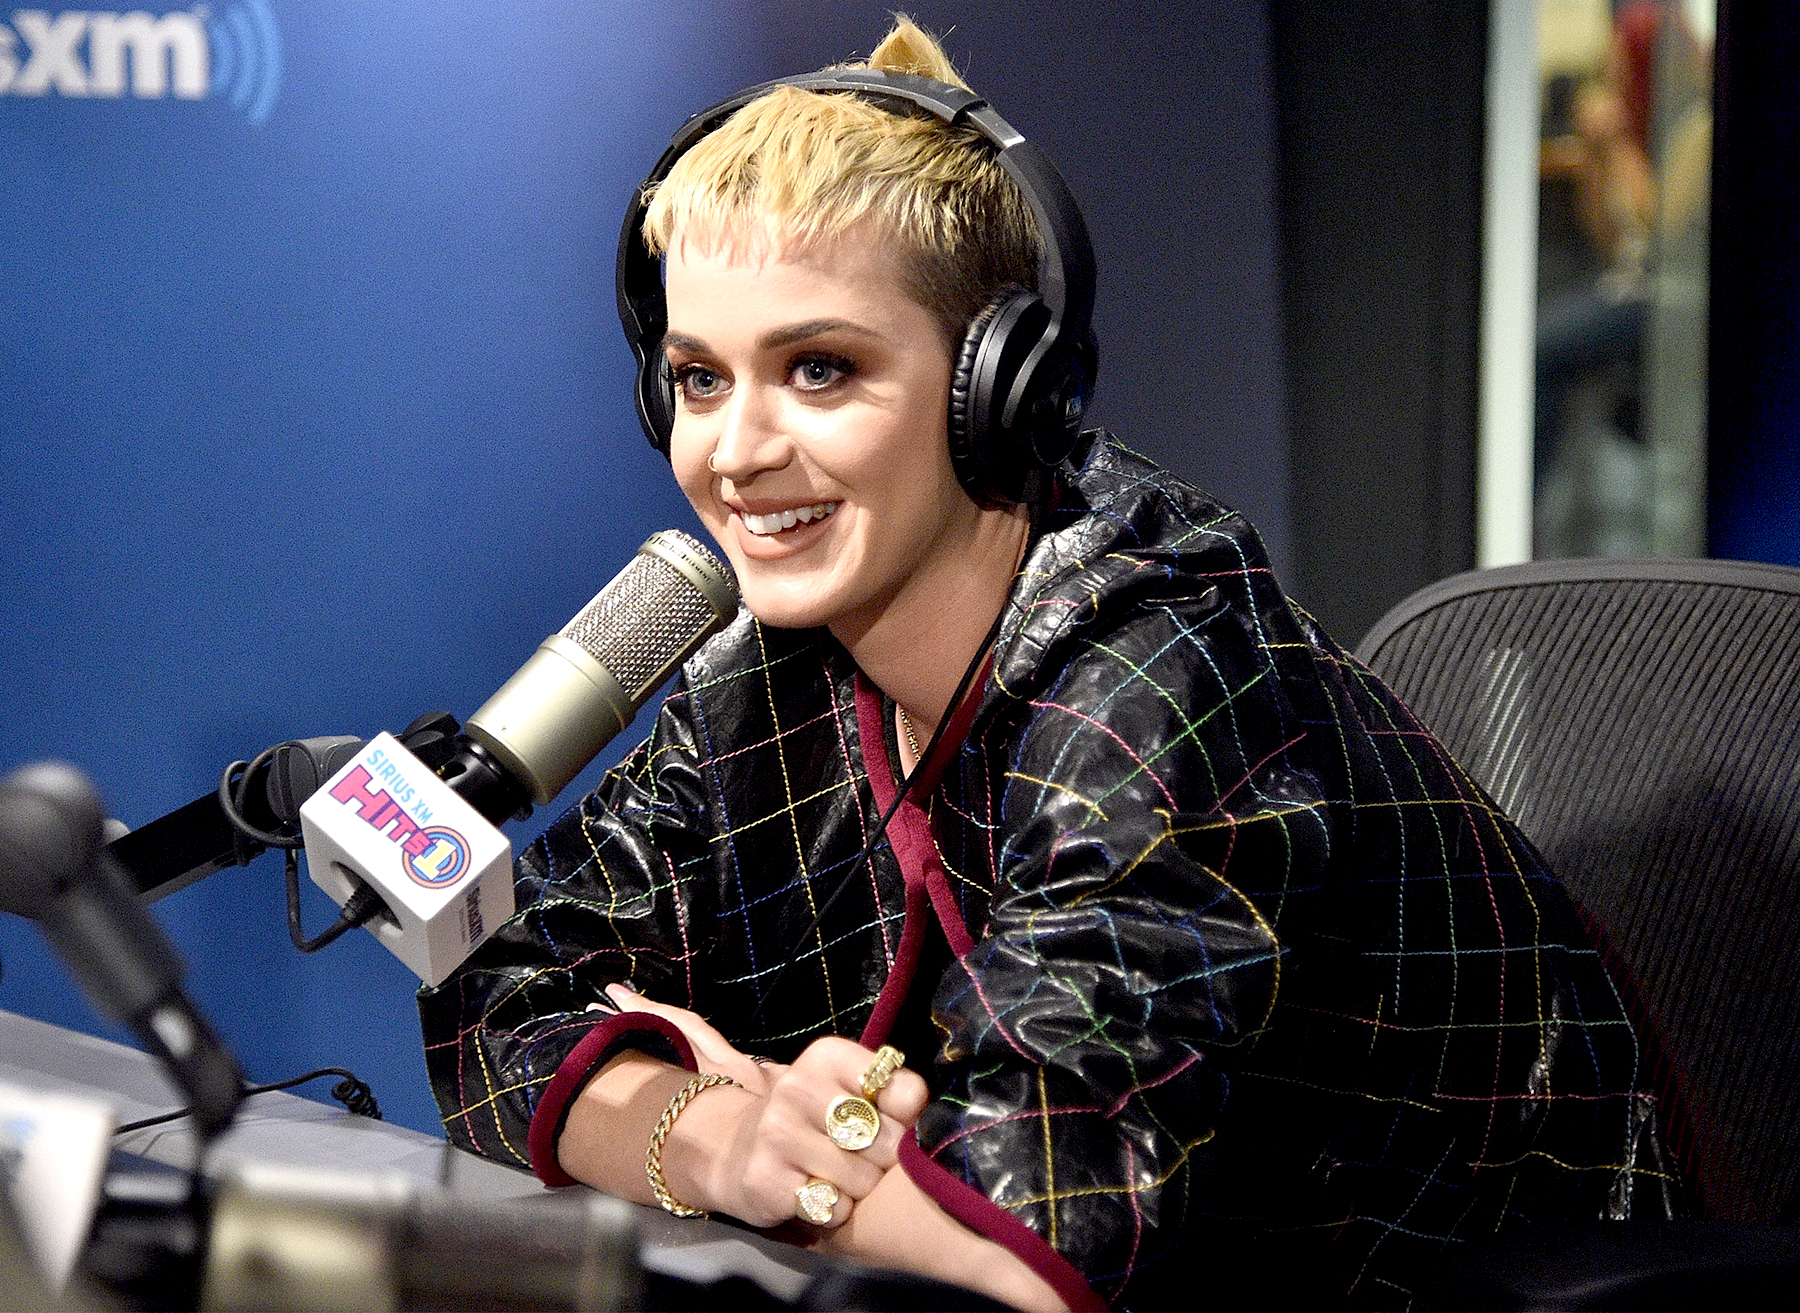 Katy Perry visits 'The Morning Mash Up' on SiriusXM Hits 1 channel at The SiriusXM Studios in New York City on May 23, 2017.